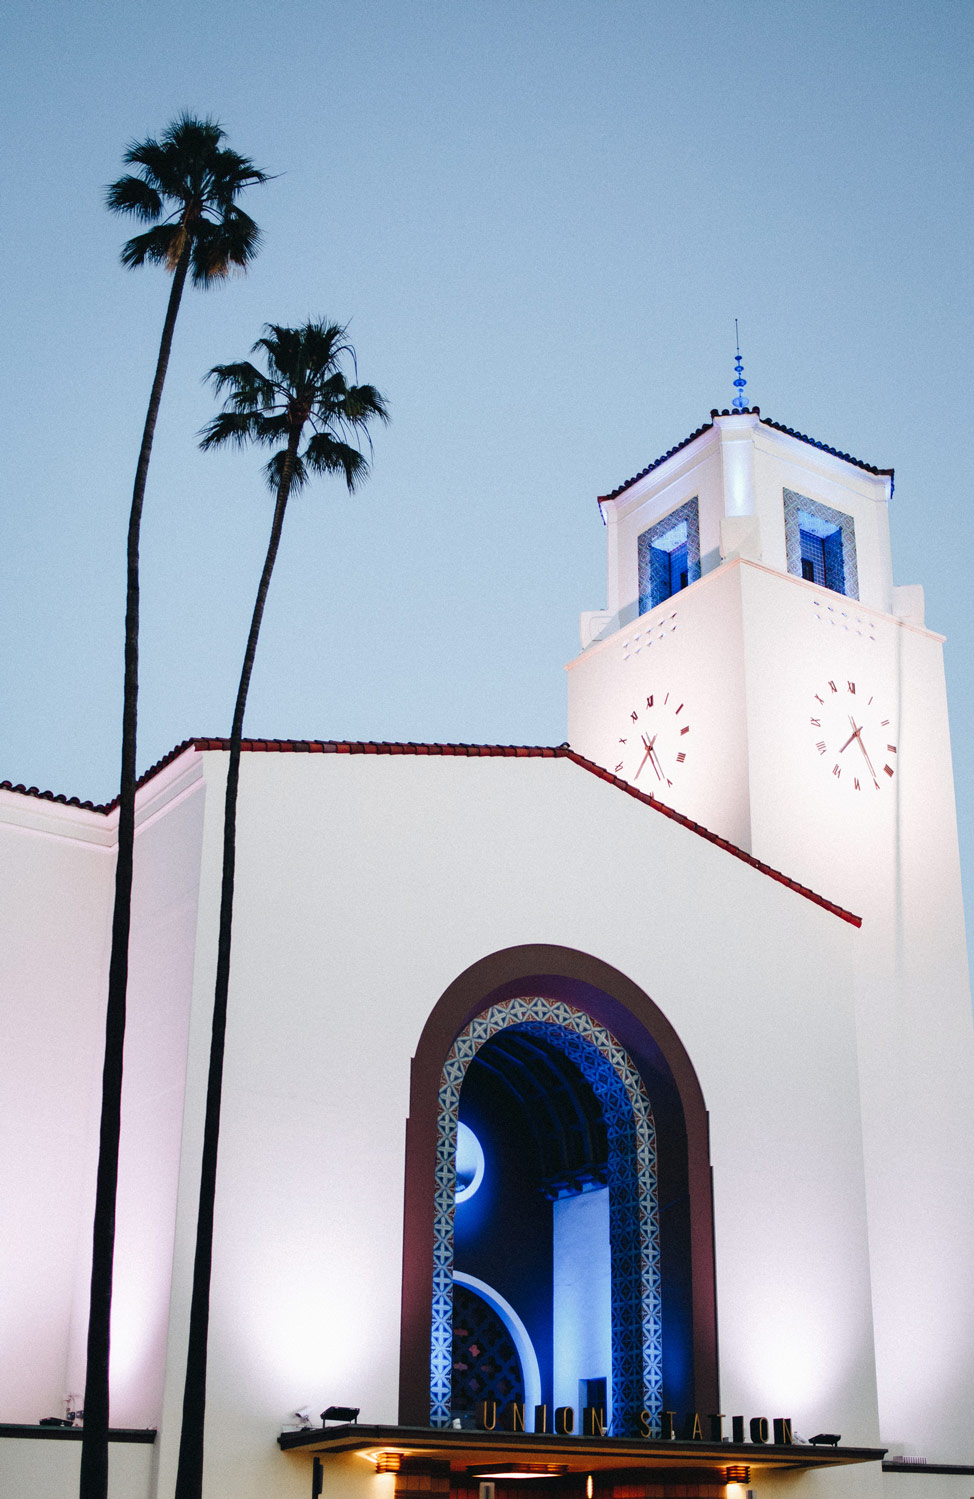 Union Station Exterior, Shot in Los Angeles | Architectural Photography